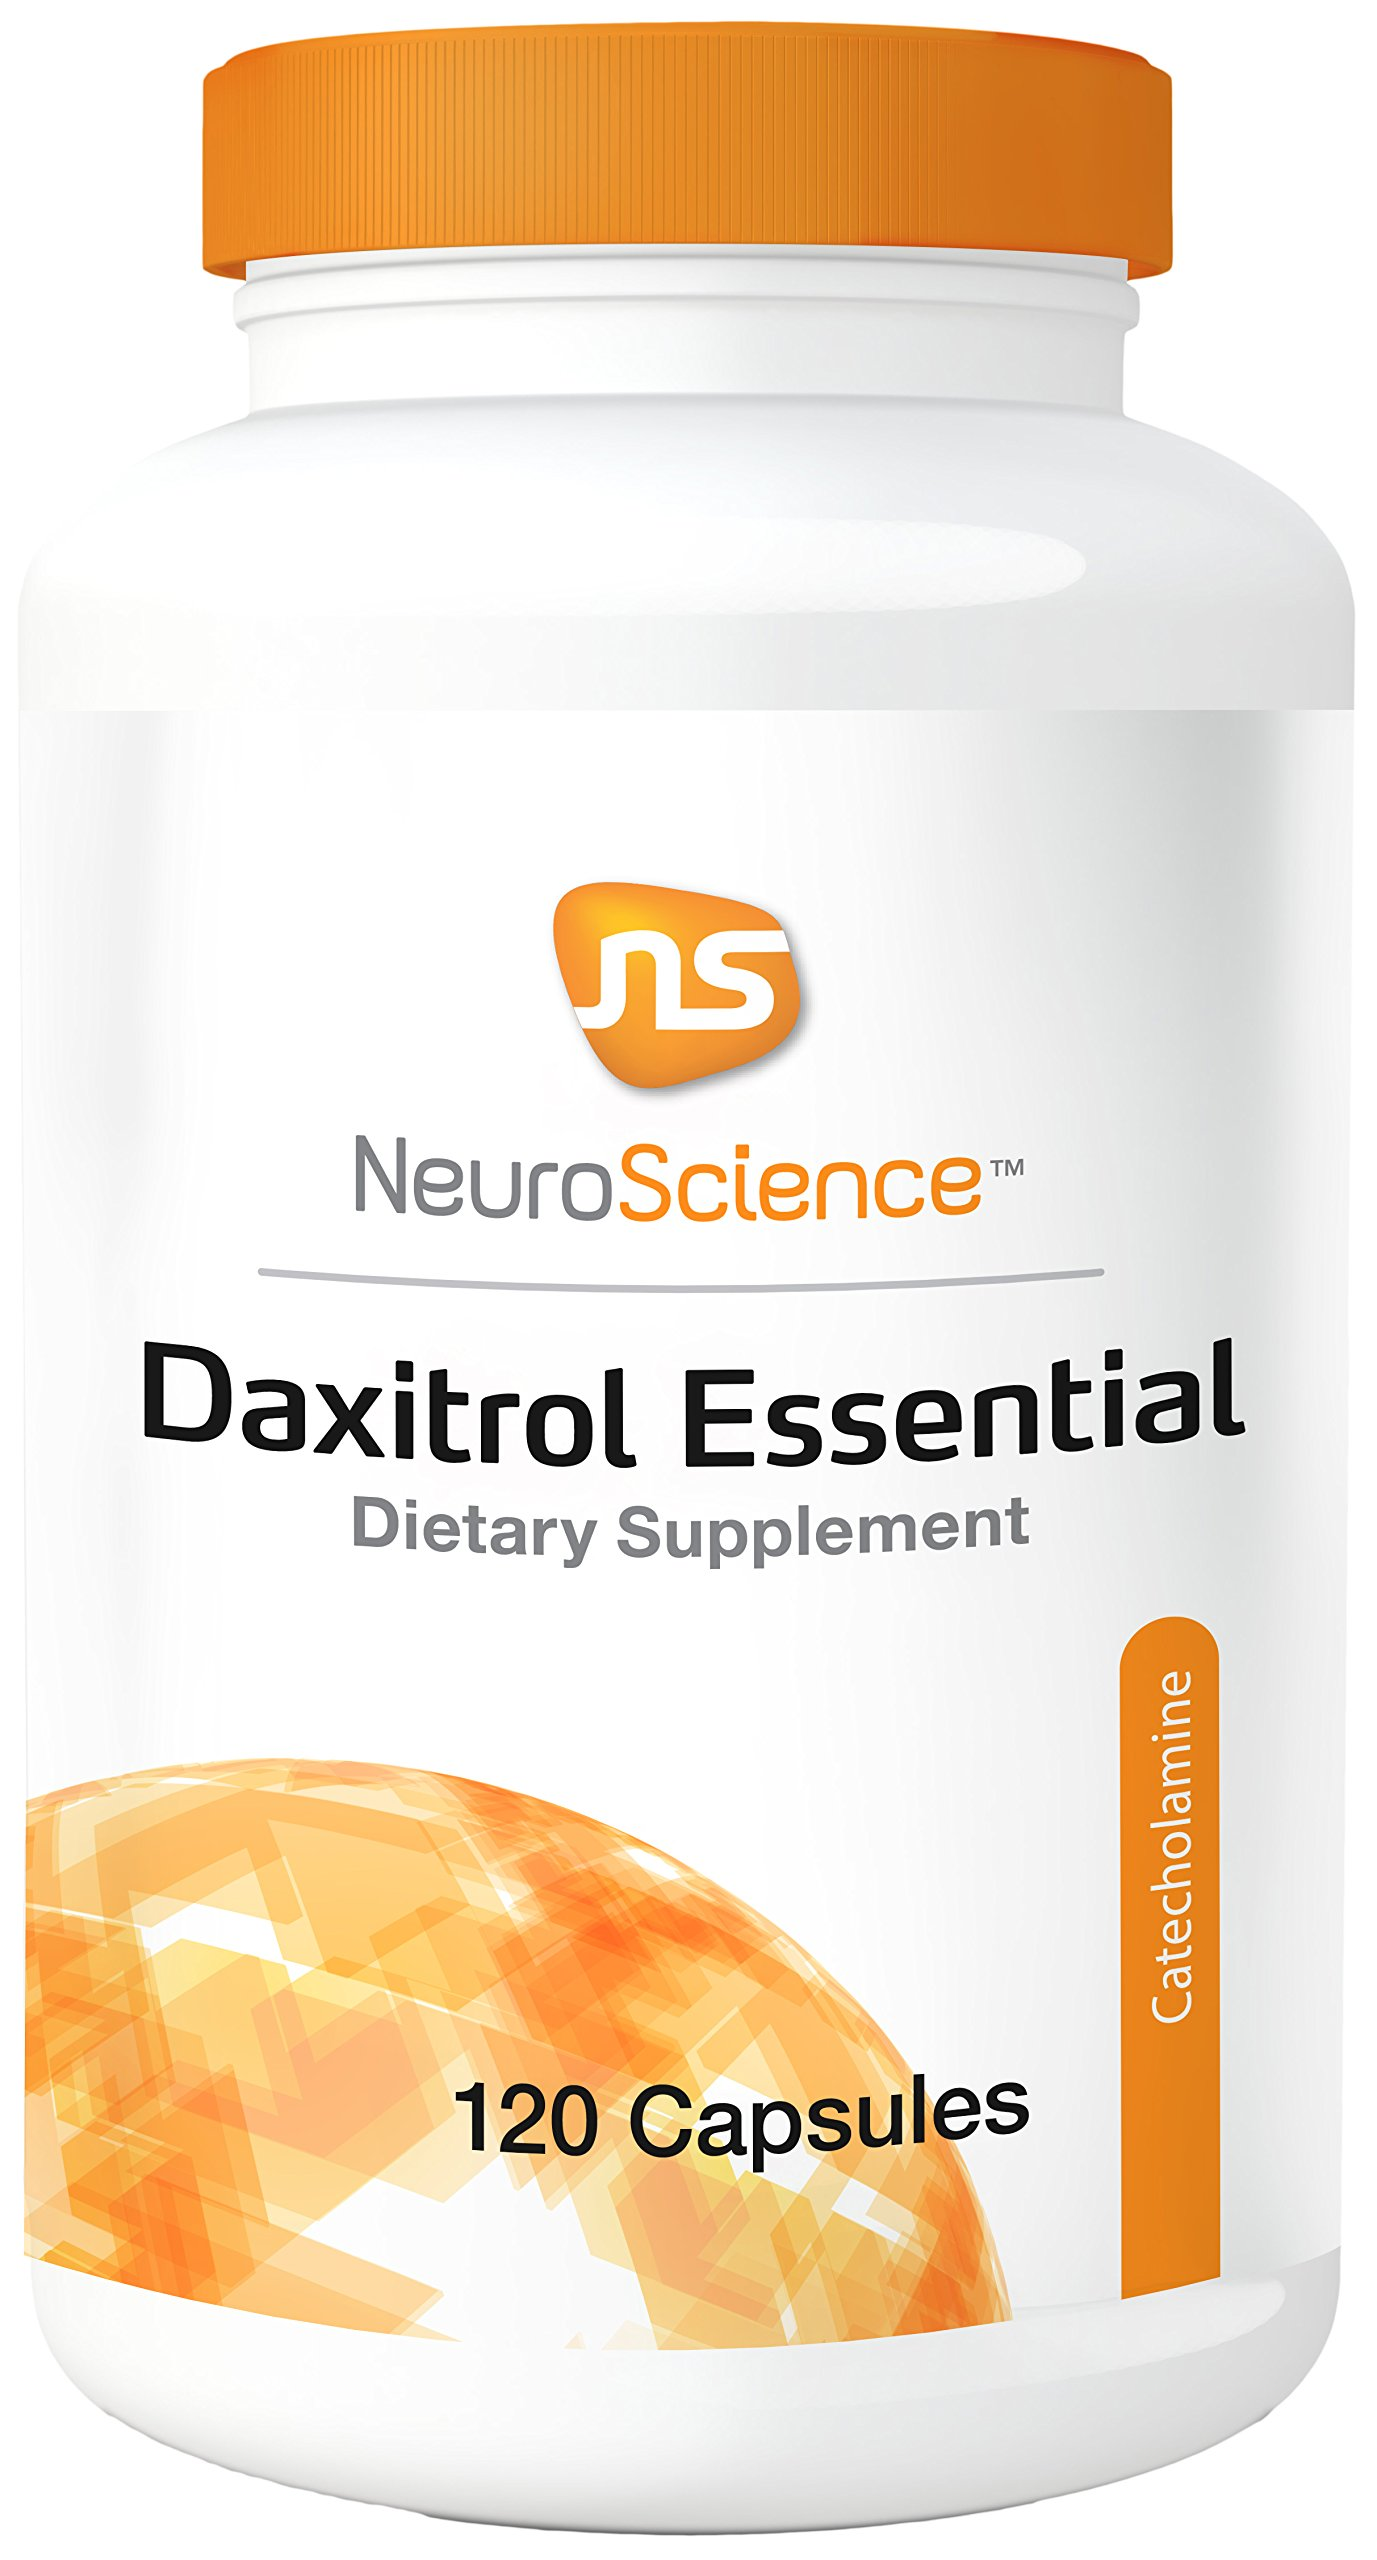 NeuroScience Daxitrol Essential - Support Craving Reduction with Forskolin Extract, Green Tea and L-phenylalanine (120 Capsules)